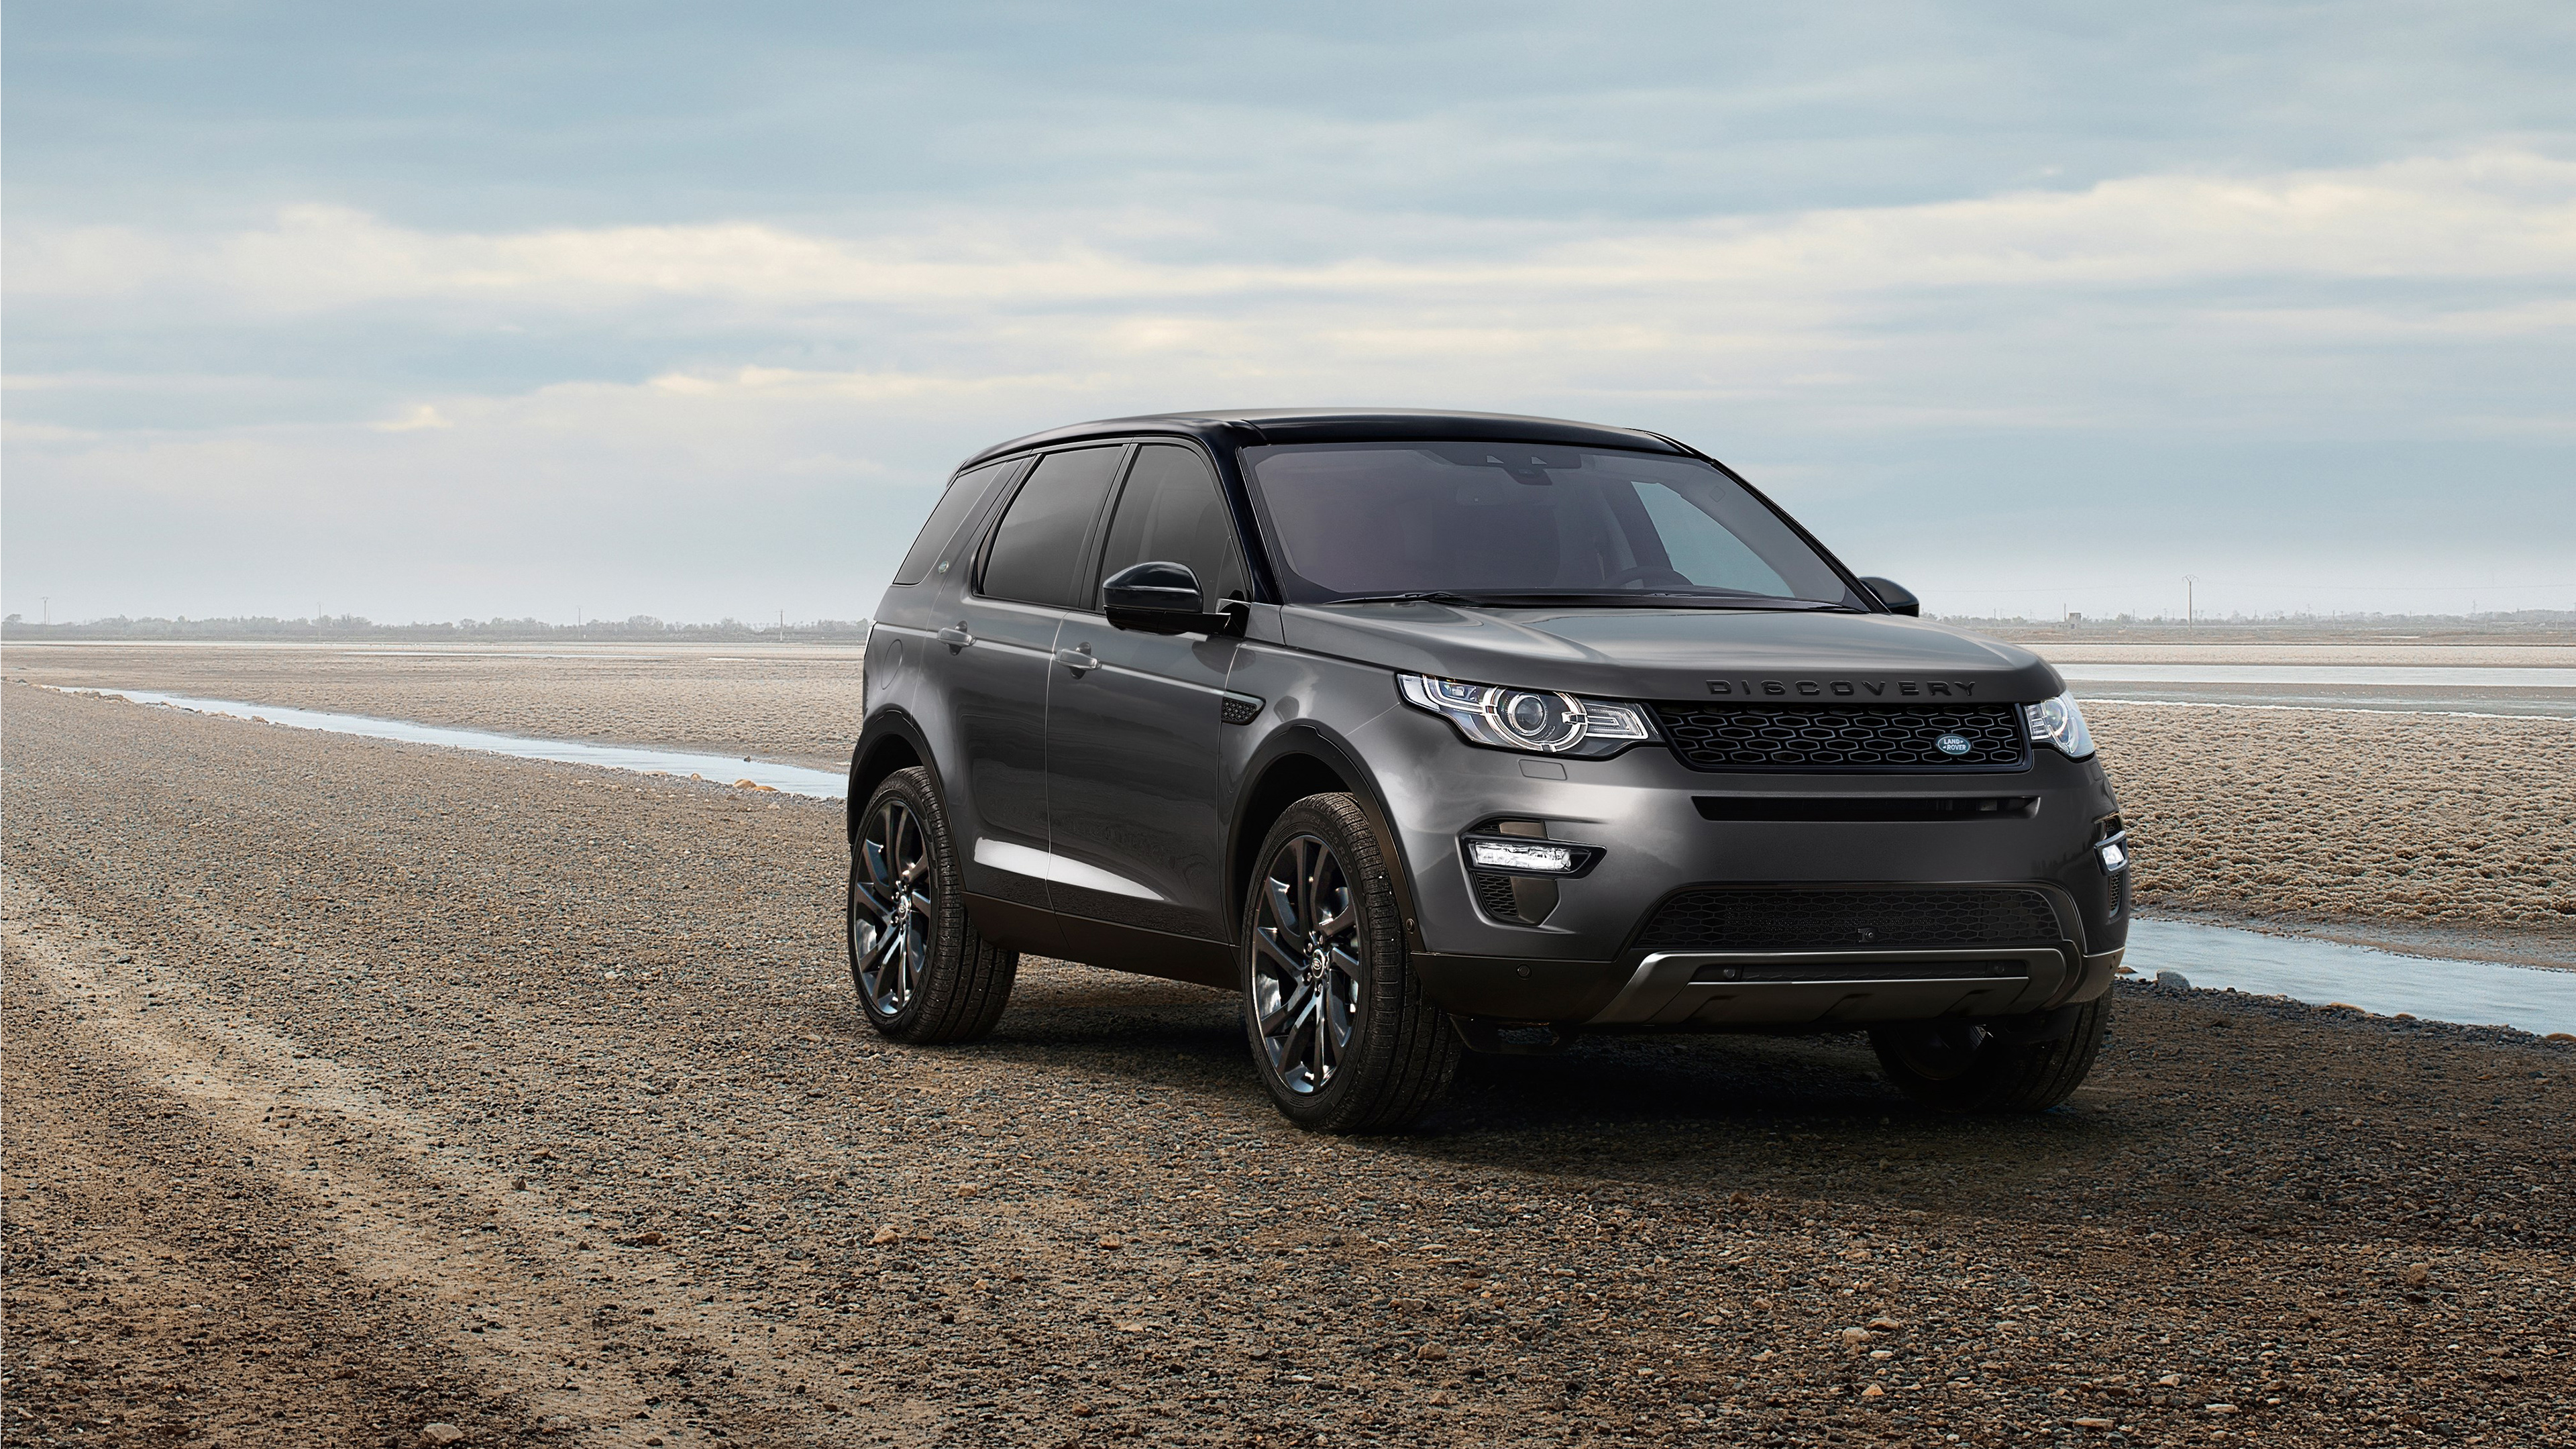 2017 land rover discovery sport 4k wallpaper hd car wallpapers id 6862. Black Bedroom Furniture Sets. Home Design Ideas